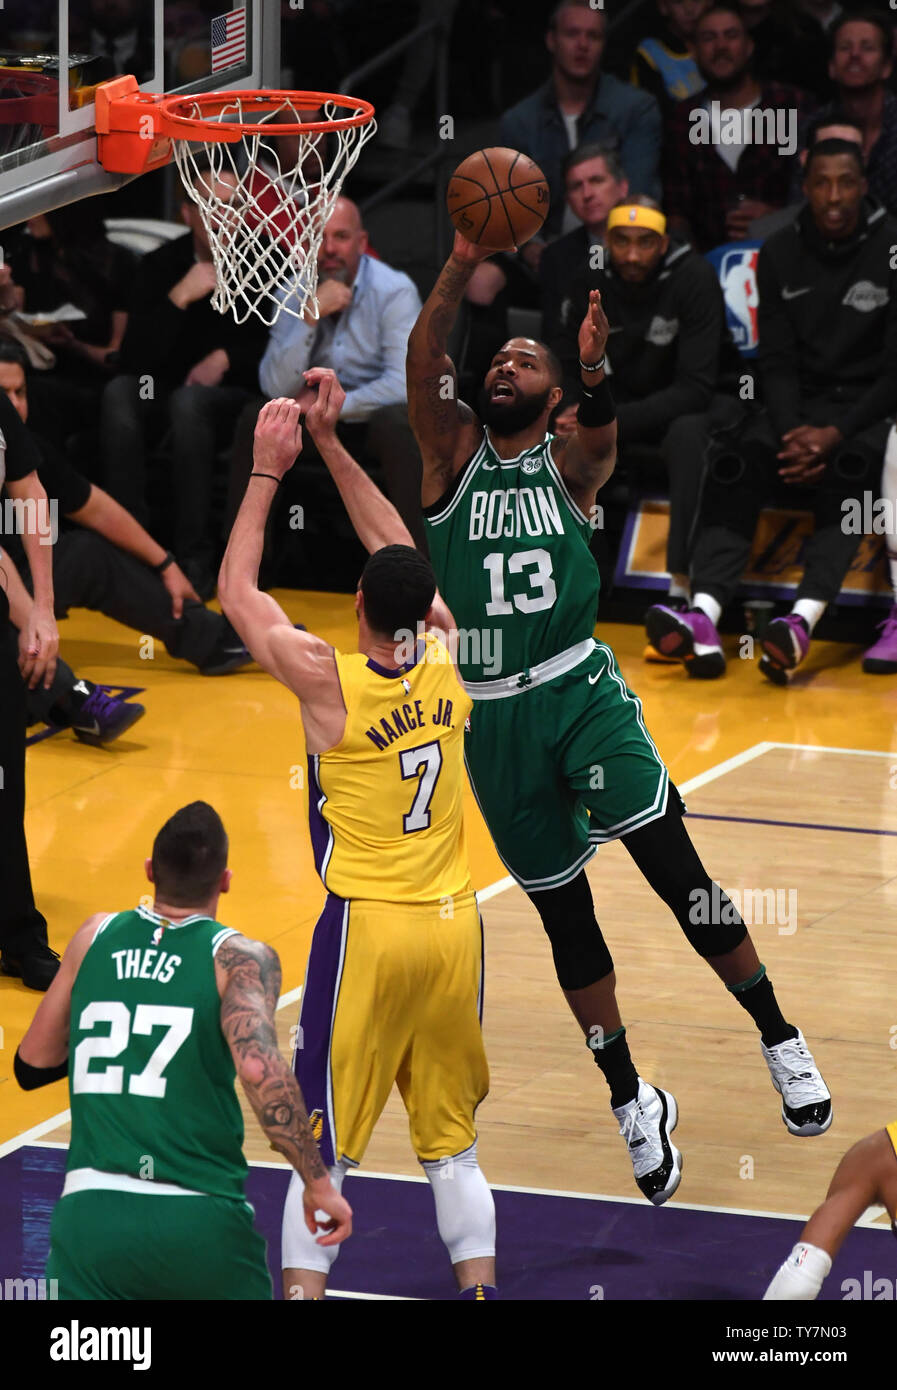 Celtics Marcus Morris Shoots Over Lakers Larry Nance Jr At Staples Center In Los Angeles January 23 2018 Photo By Jon Soohoo Upi Stock Photo Alamy